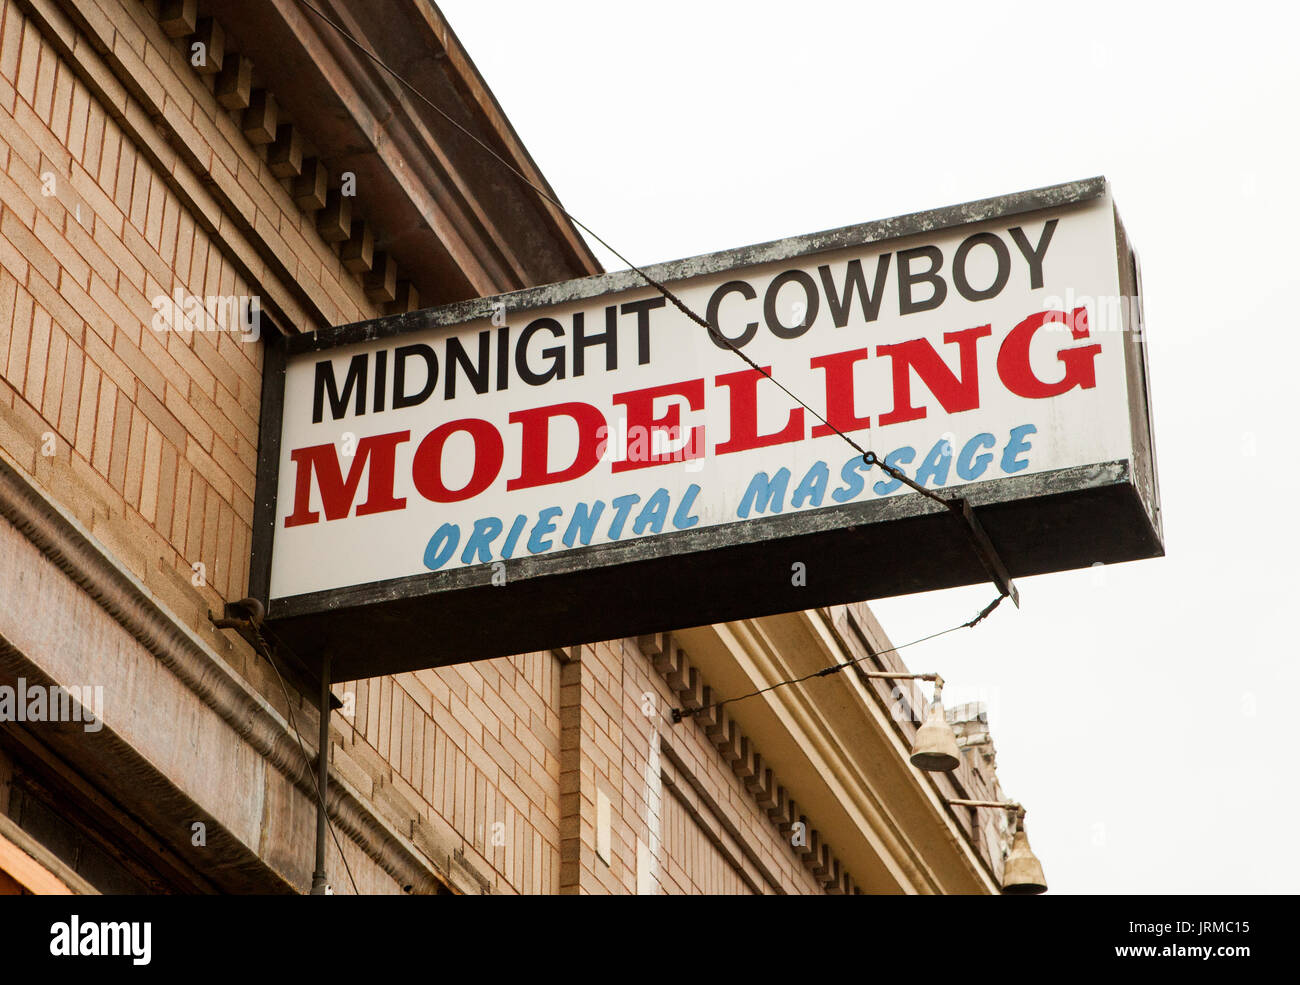 Austin, Texas sign that reads: 'Midnight Cowboy Modeling Oriental Massage,' when the site housed a sketchy massage parlor. - Stock Image